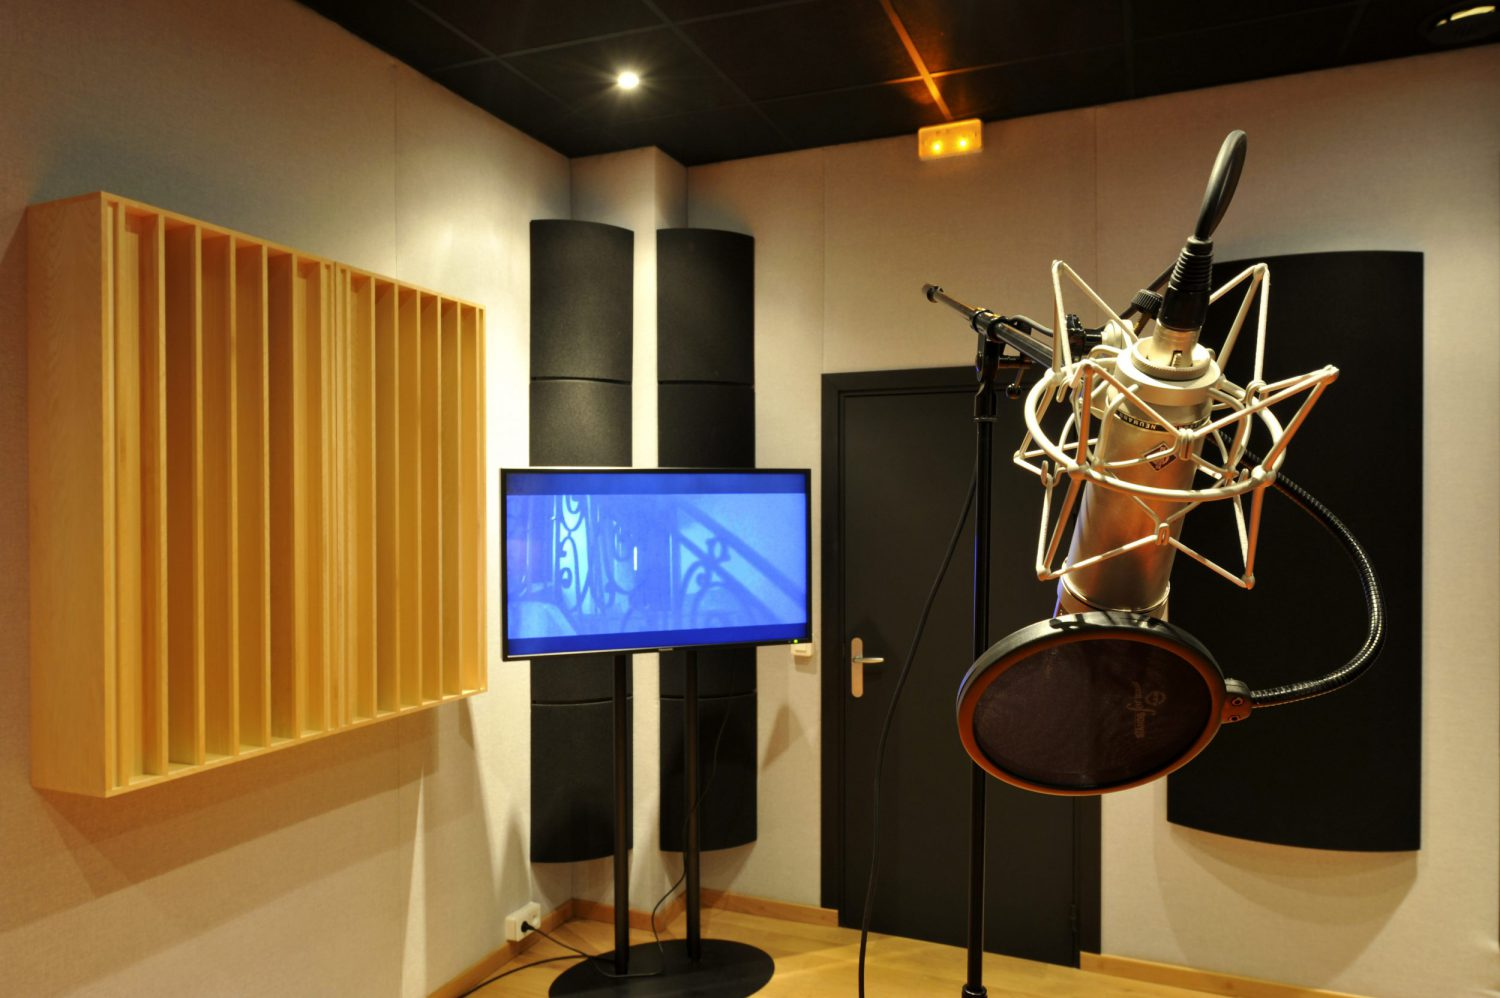 Cabine son du Studio Baxendal : post production son audiovisuelle et enregistrement Paris